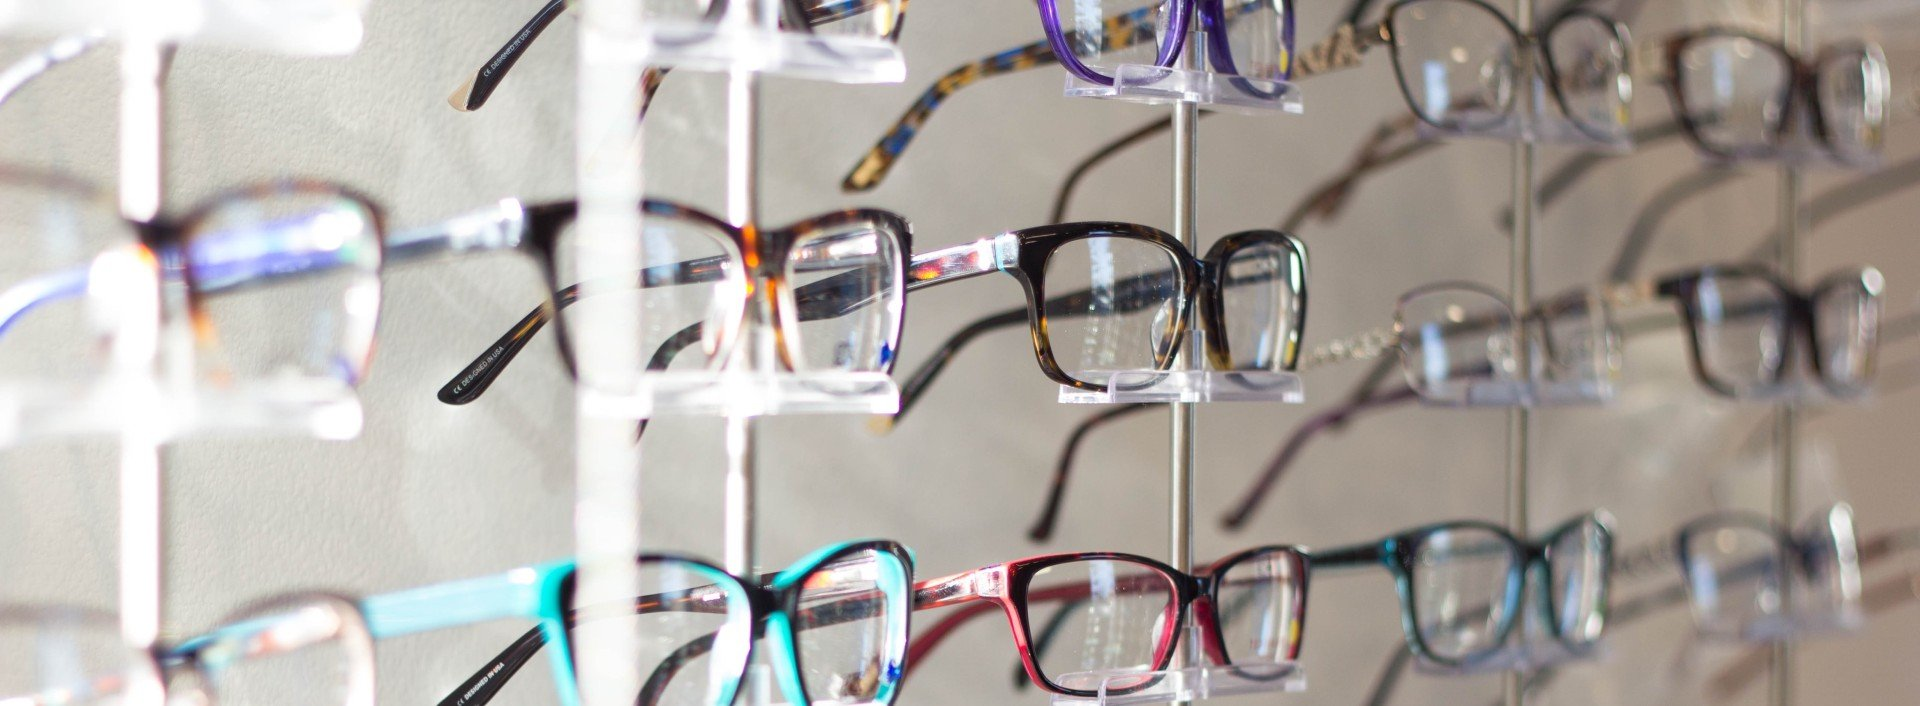 Vocabulary for the Eye Doctor: A rack of glasses for sale at an optometrist's office.